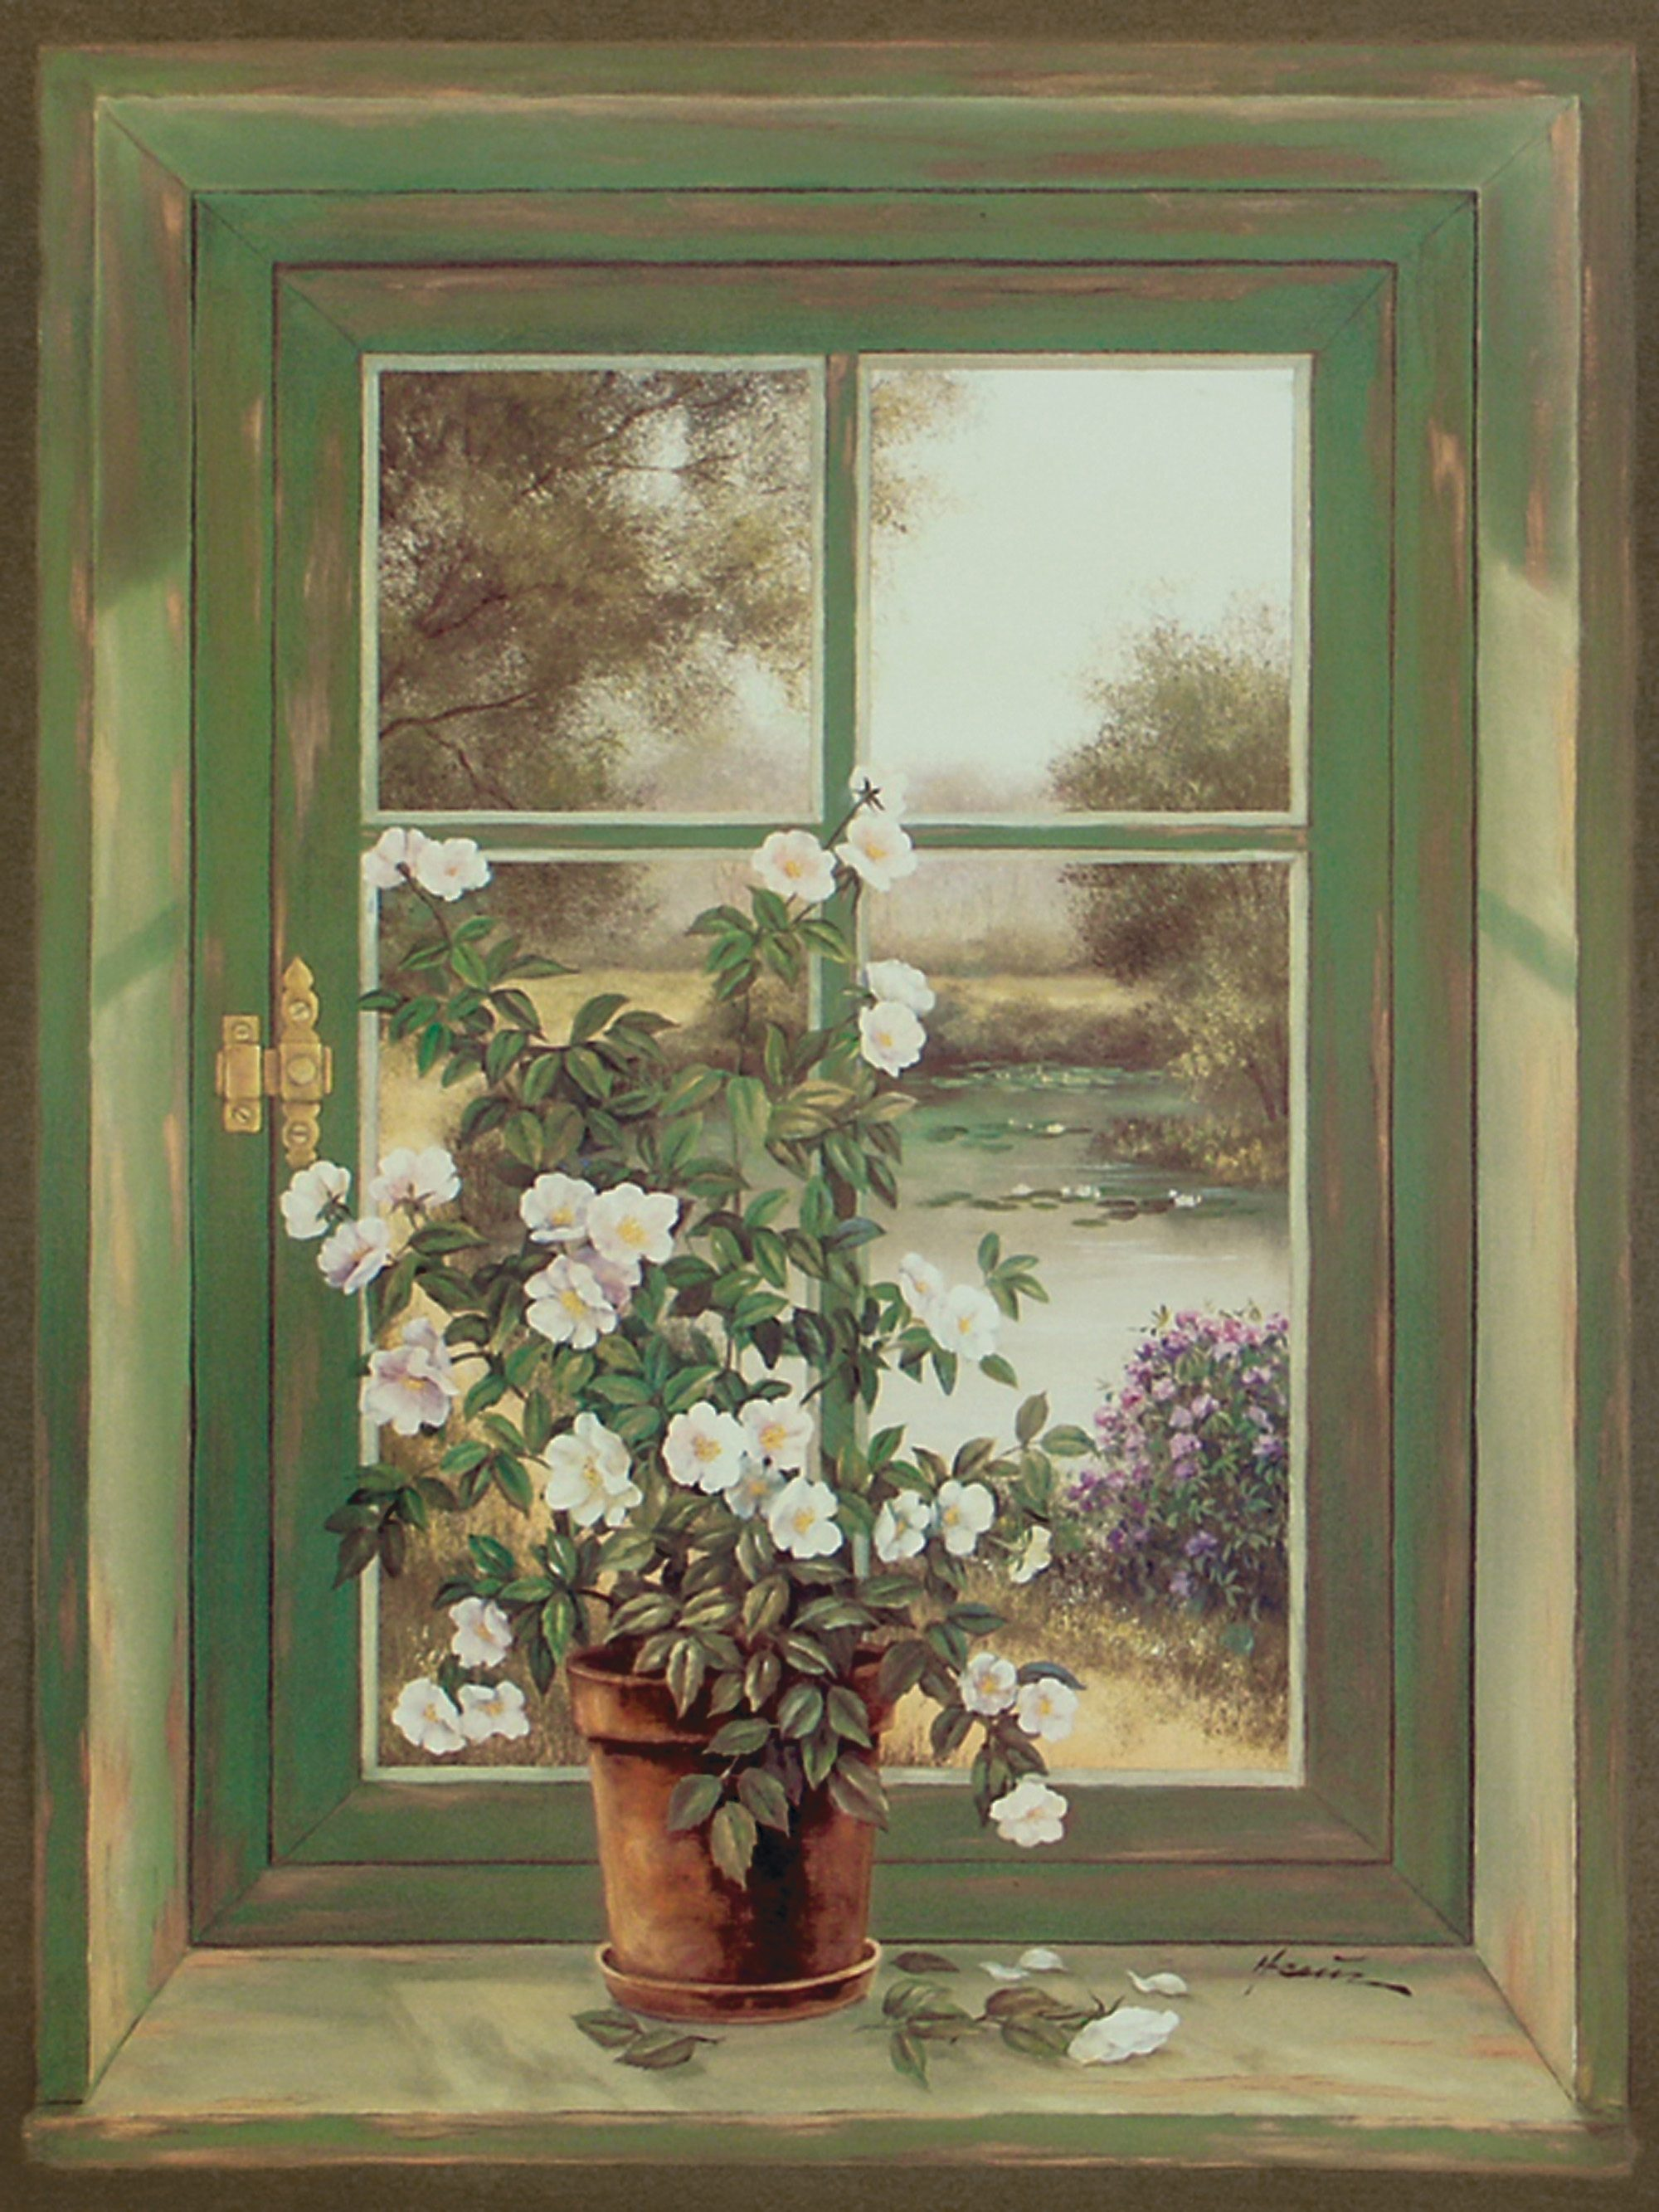 Home affaire, Leinwandbild, »A. Heins: Wildrosen am Fenster«, 57/79 cm